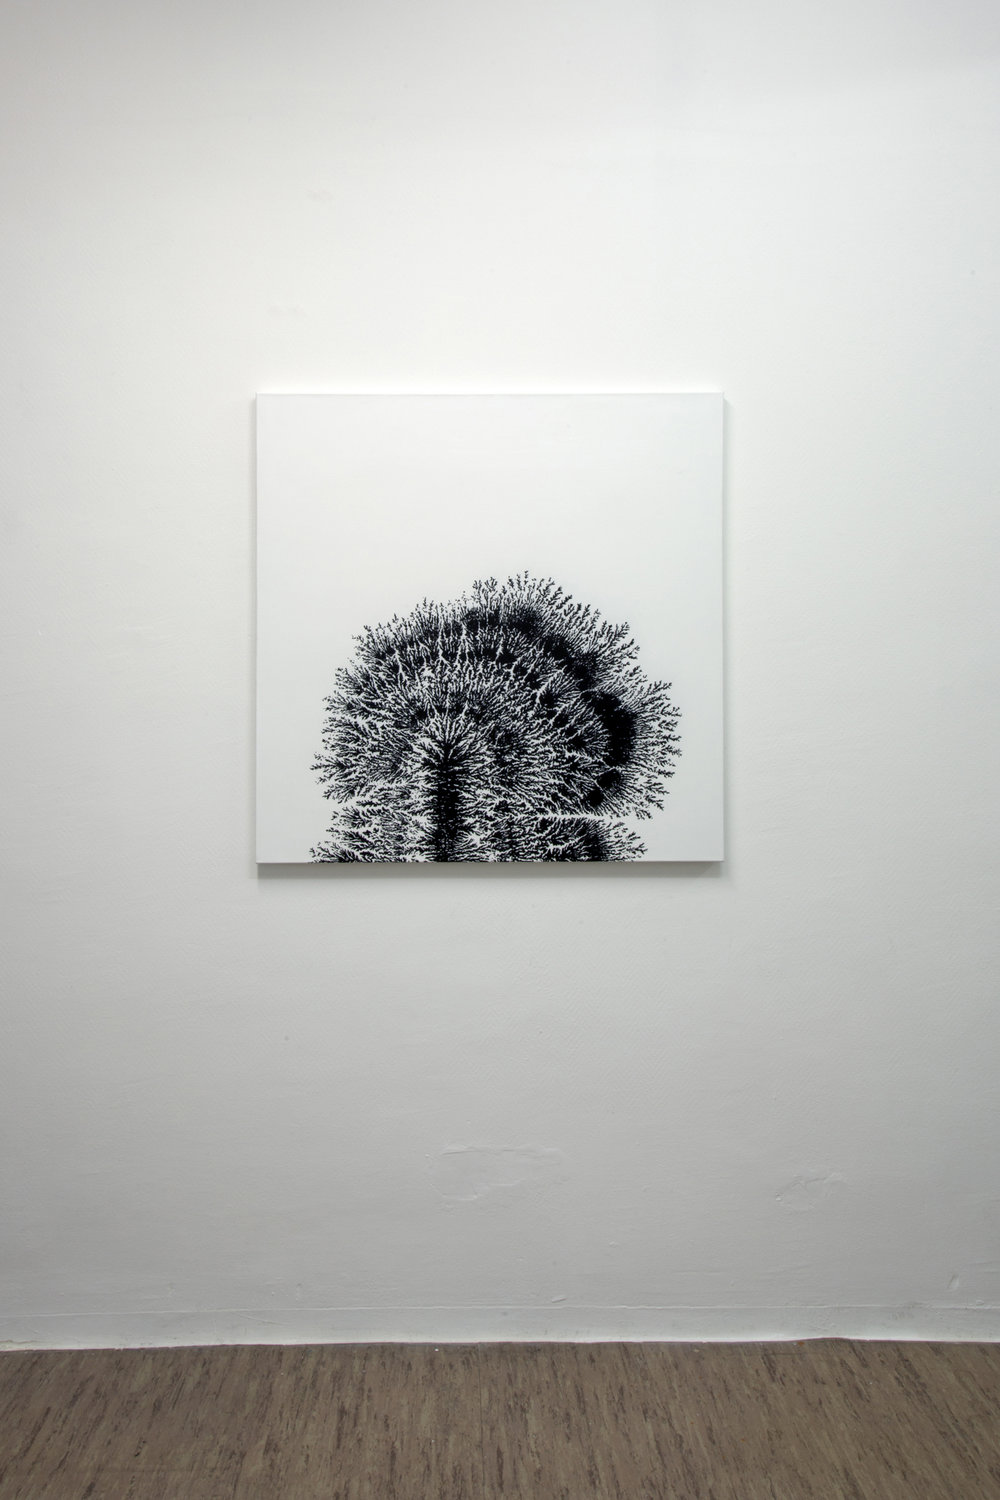 Dendrite, 2013, acrylic on canvas, 100 x 100 cm